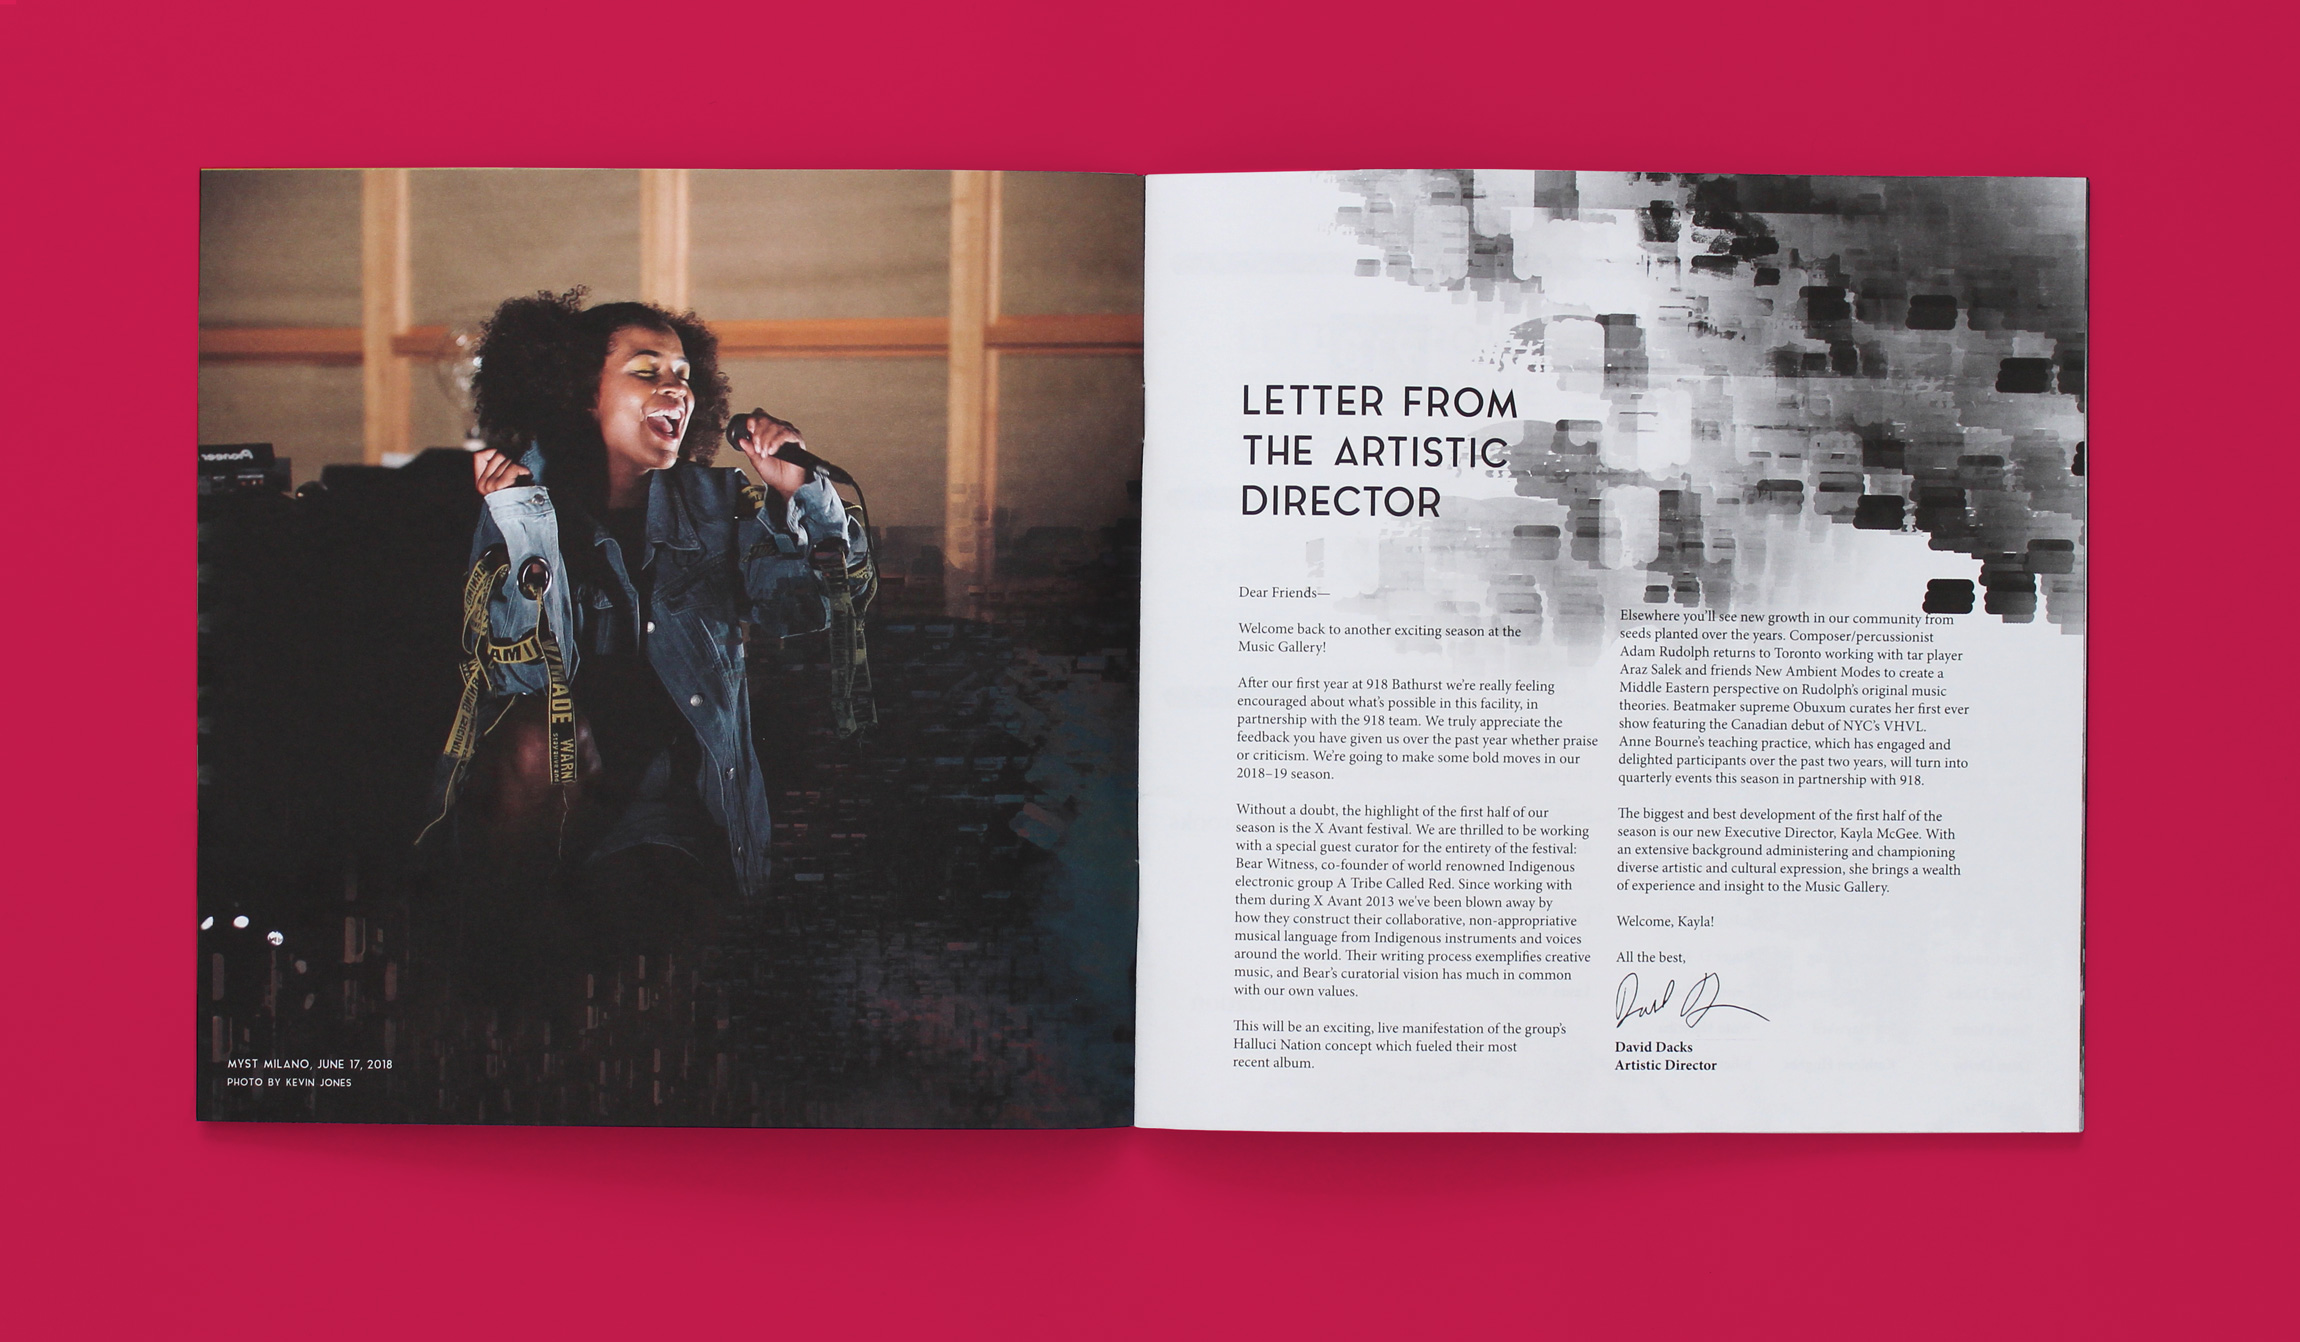 Sample spread showing the Letter from the Artistic Director (right page) and a full-page photo of Myst Milano singing at a Music Gallery concert(left page).